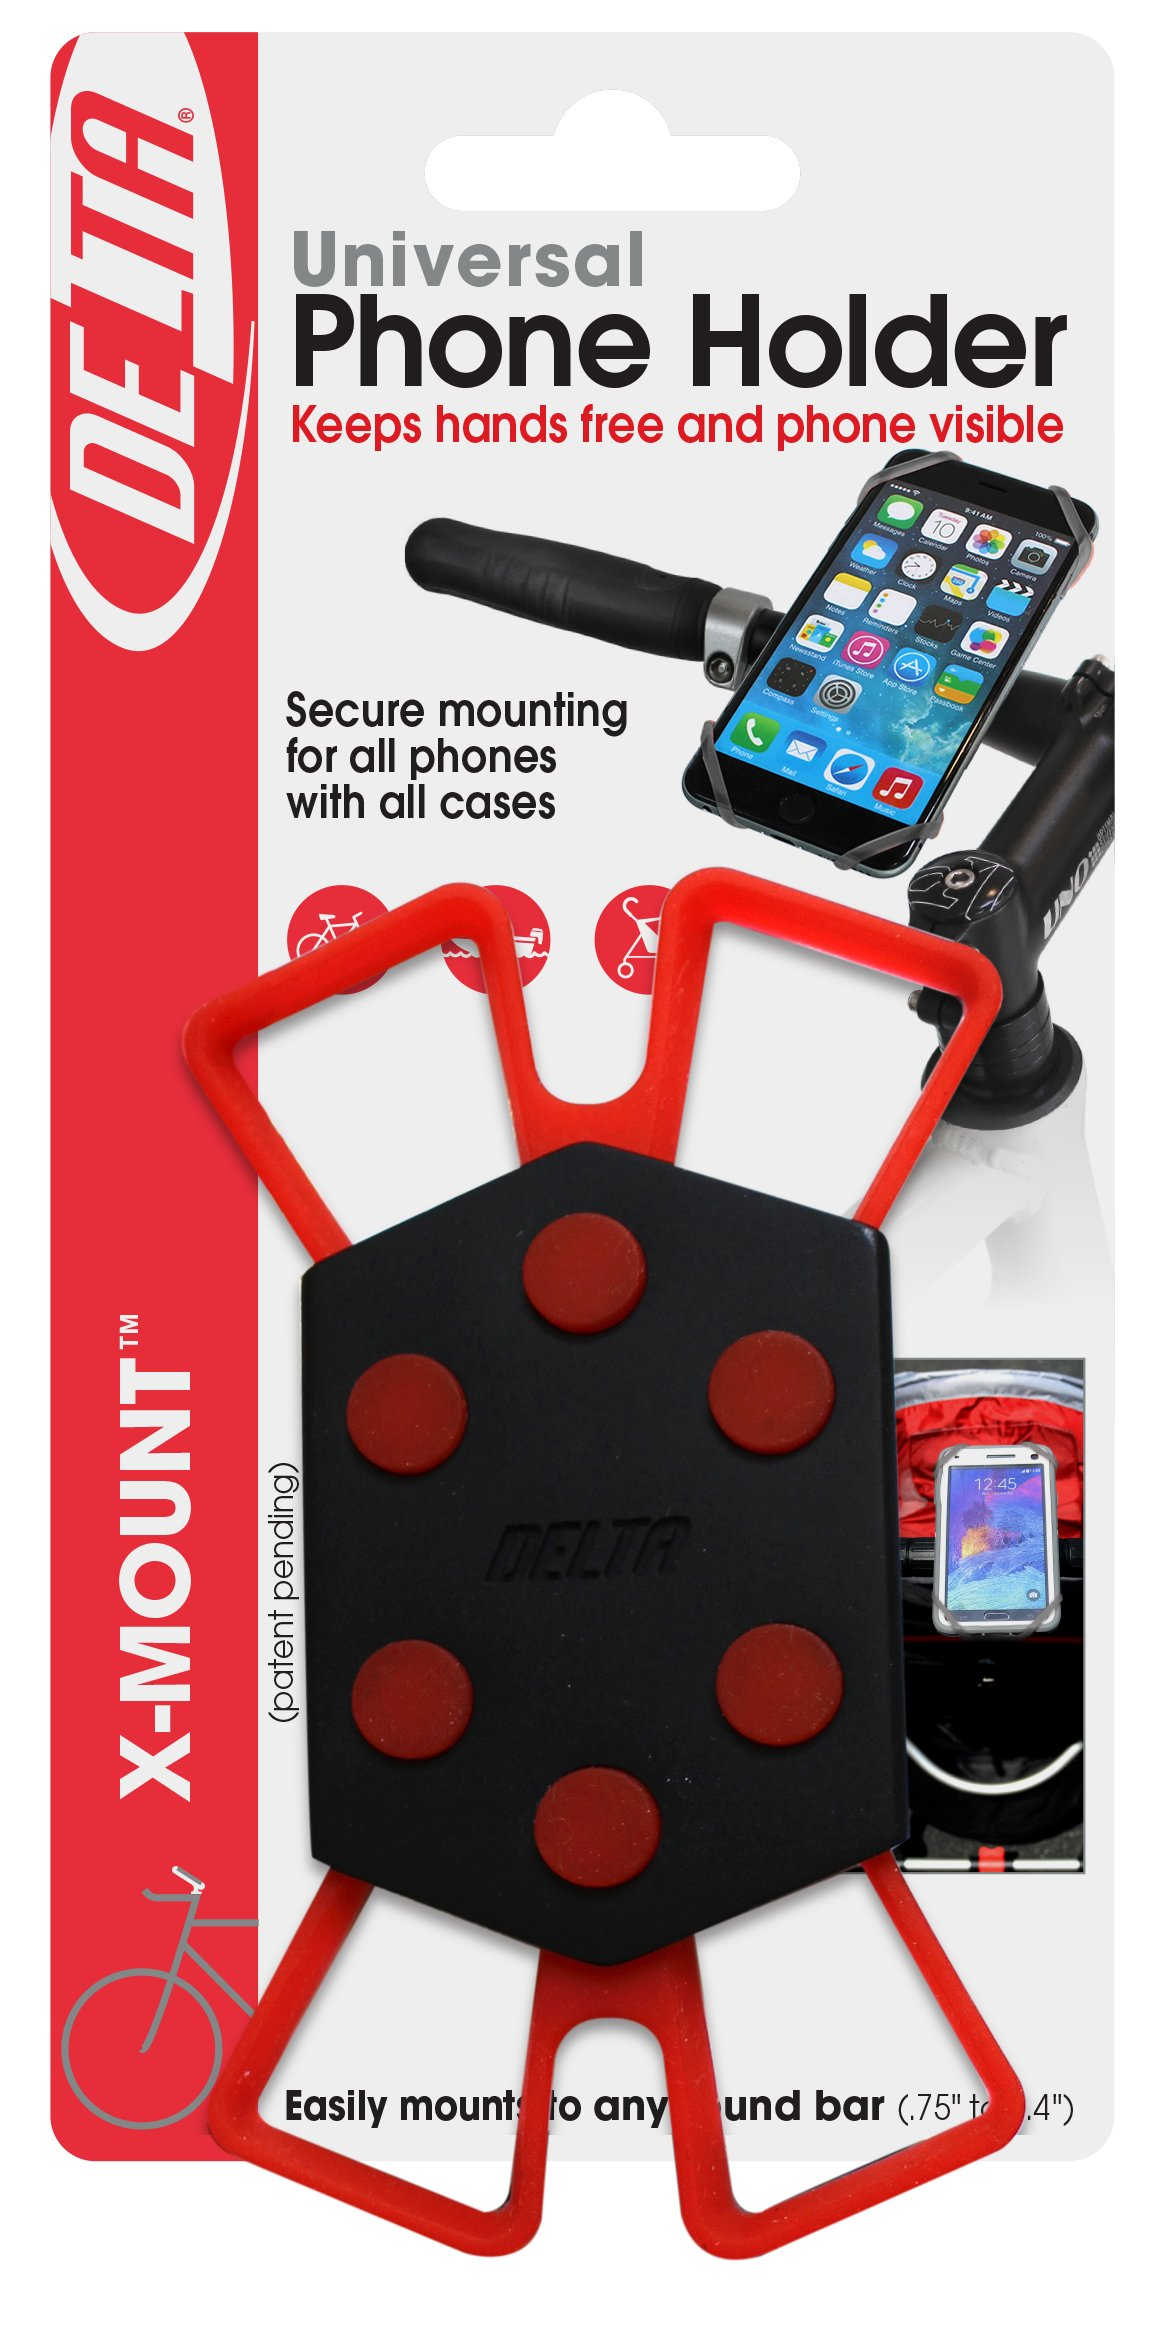 Delta Cycle x Mount Bike Phone Holder Caddy Case iPhone Samsung Android